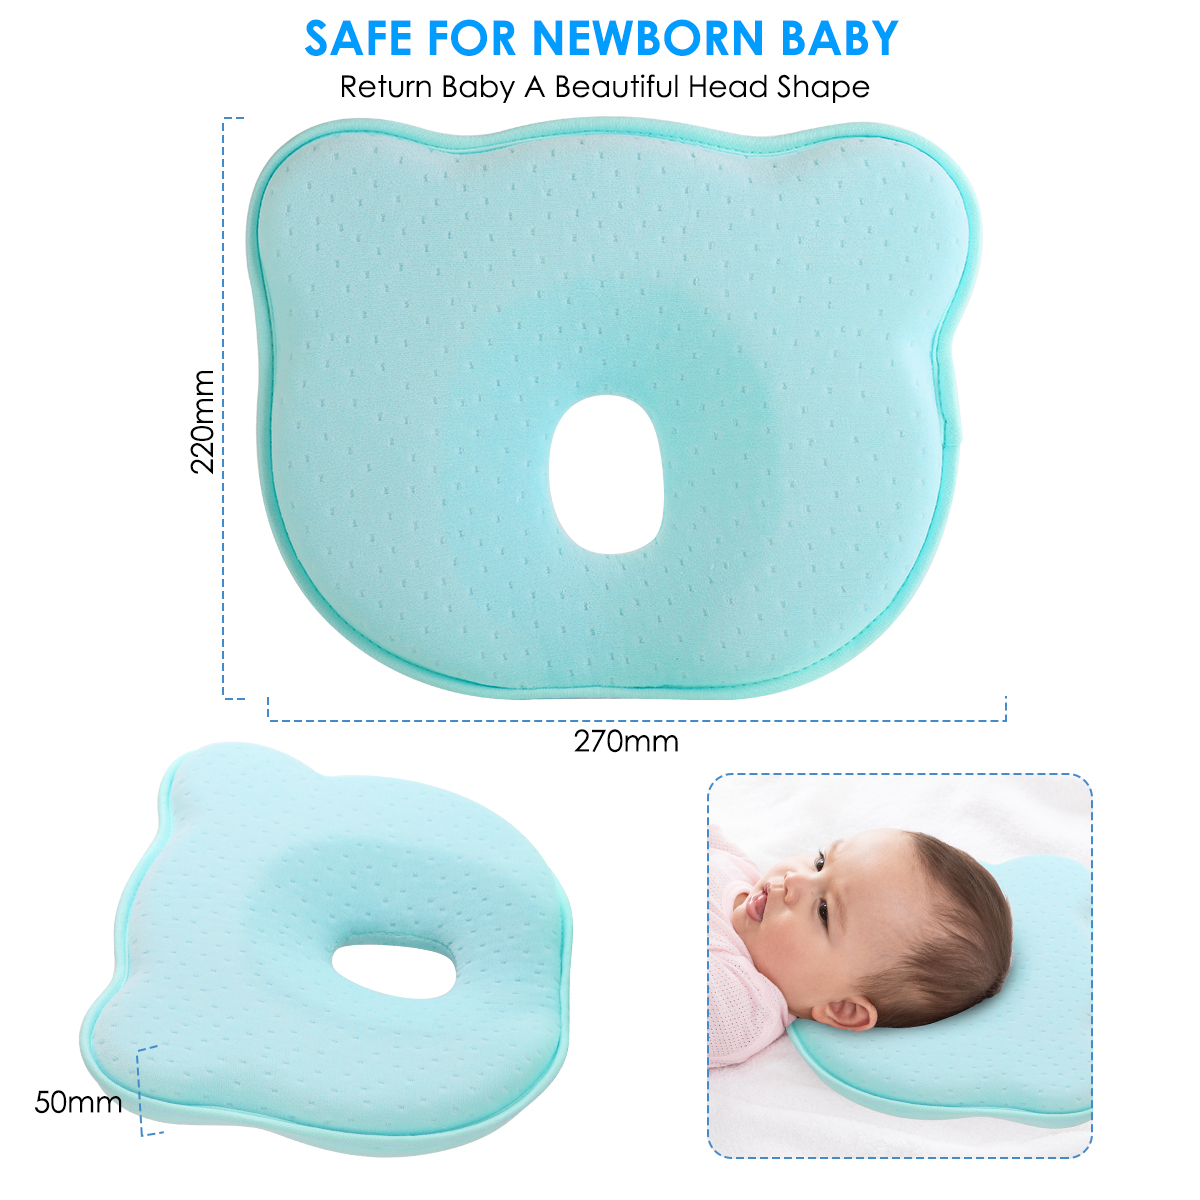 puseky Baby Pillow Newborn Memory Foam Head Shaping Neck Support Pillow Preventing Flat Head Syndrome Plagiocephaly